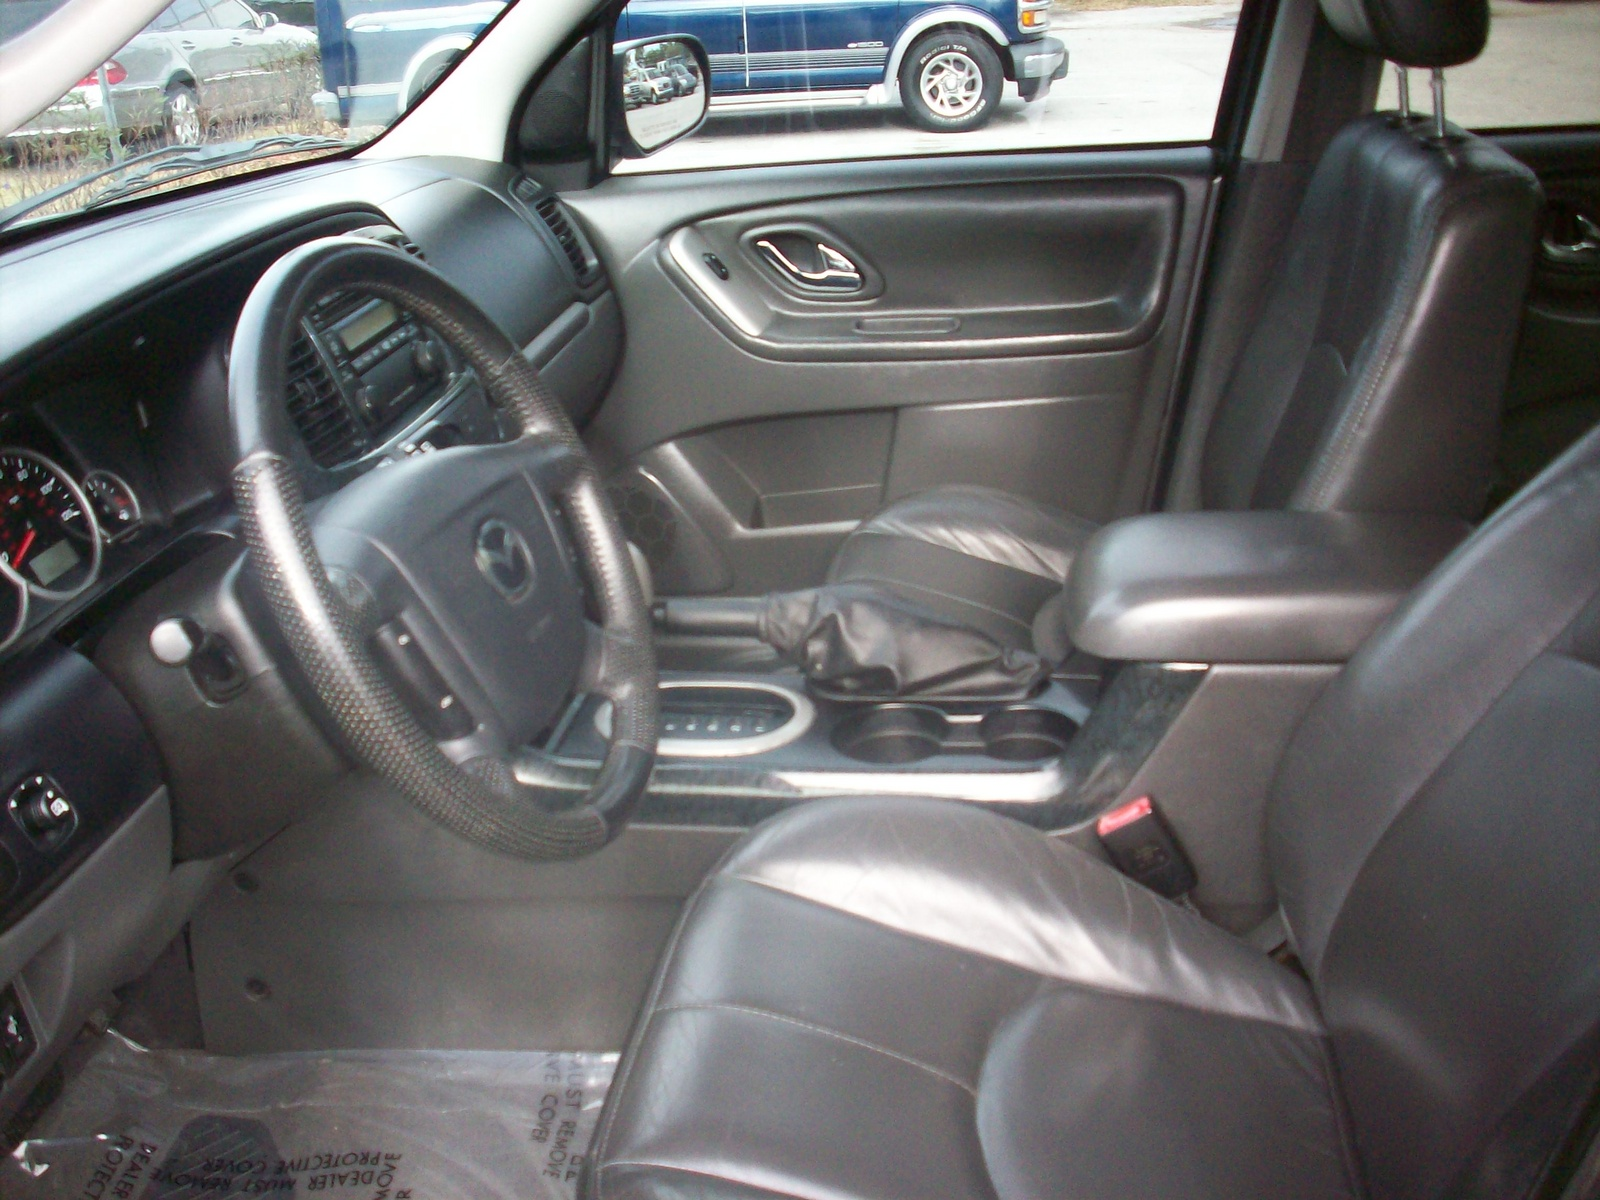 2005 mazda tribute interior pictures cargurus. Black Bedroom Furniture Sets. Home Design Ideas